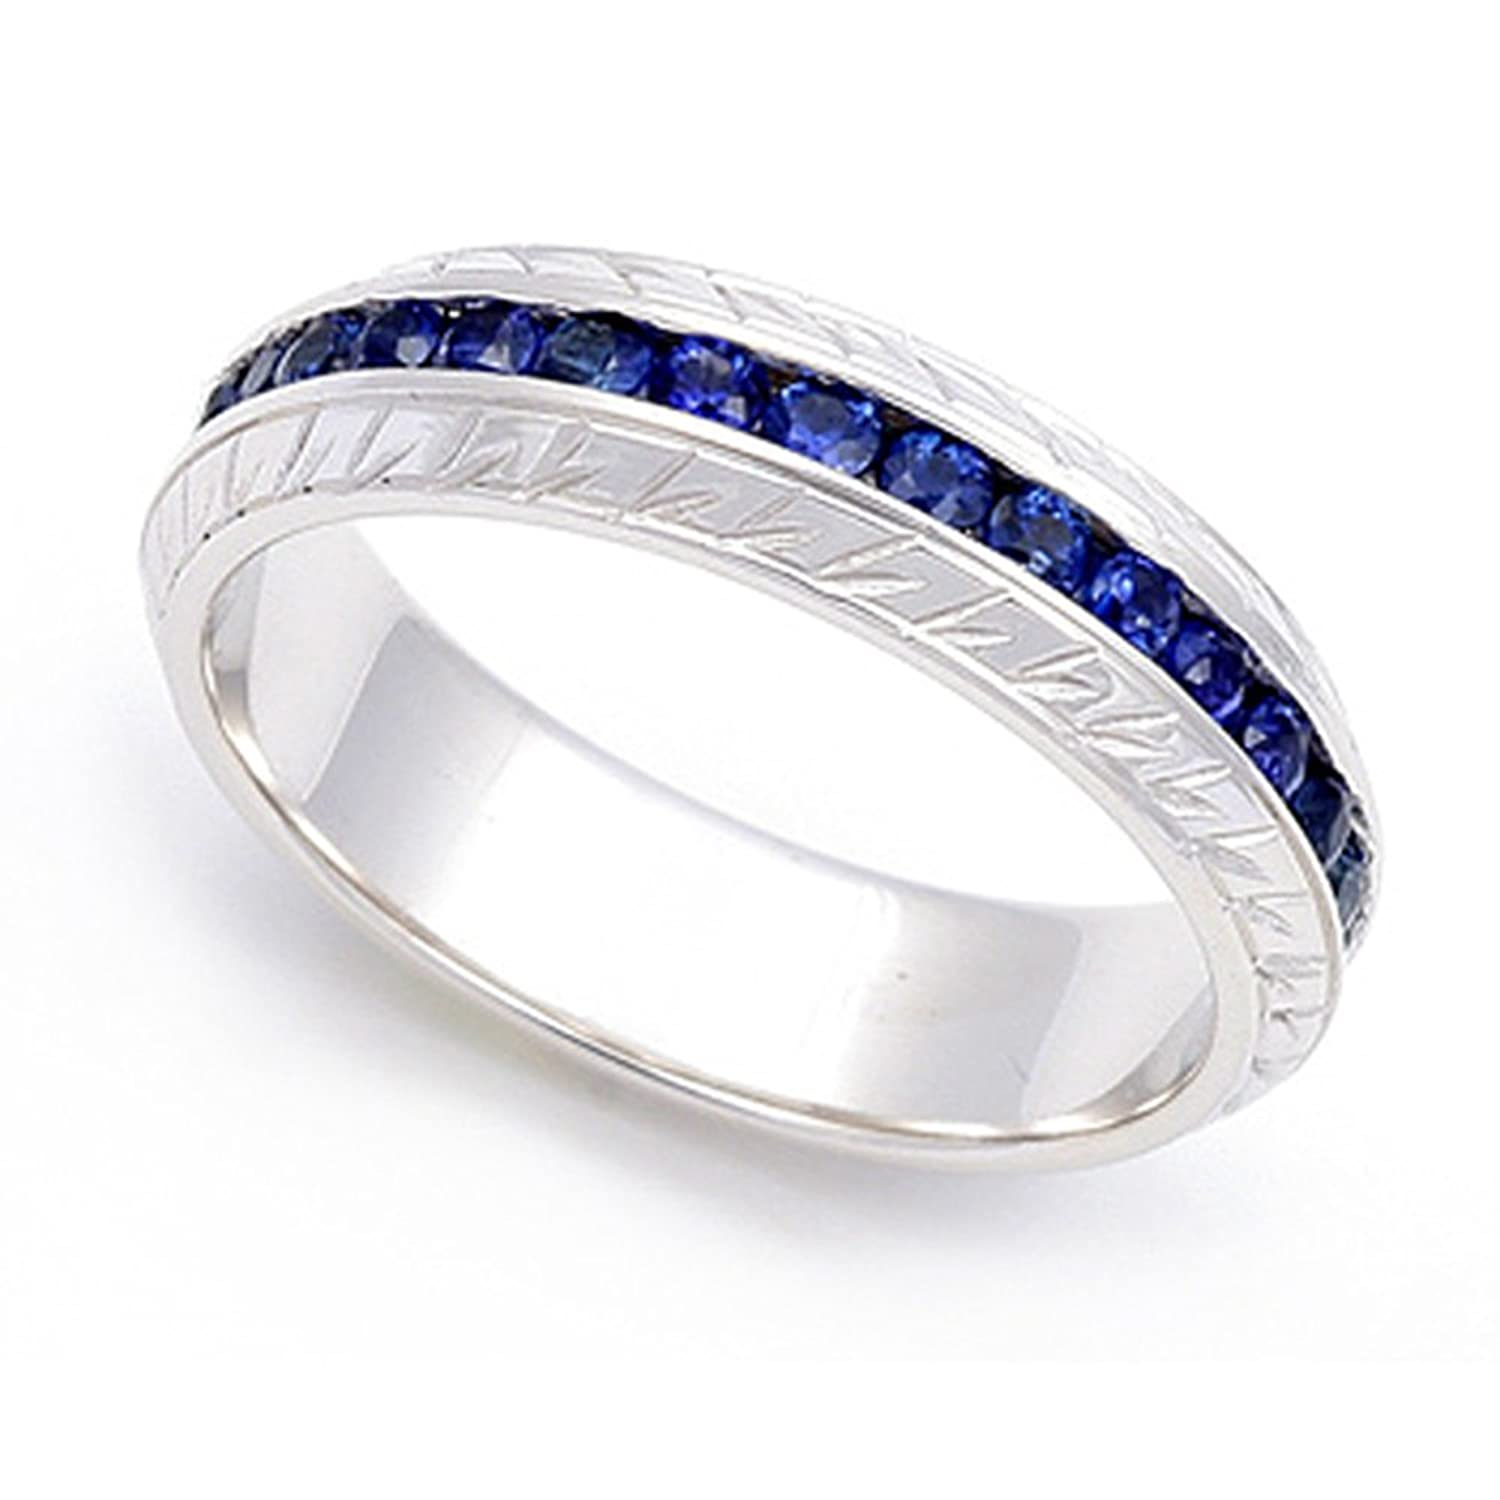 diamond eternity o reilly mayo dublin ring bands double nigel or wedding product facebook sapphire band halo unusual engagement